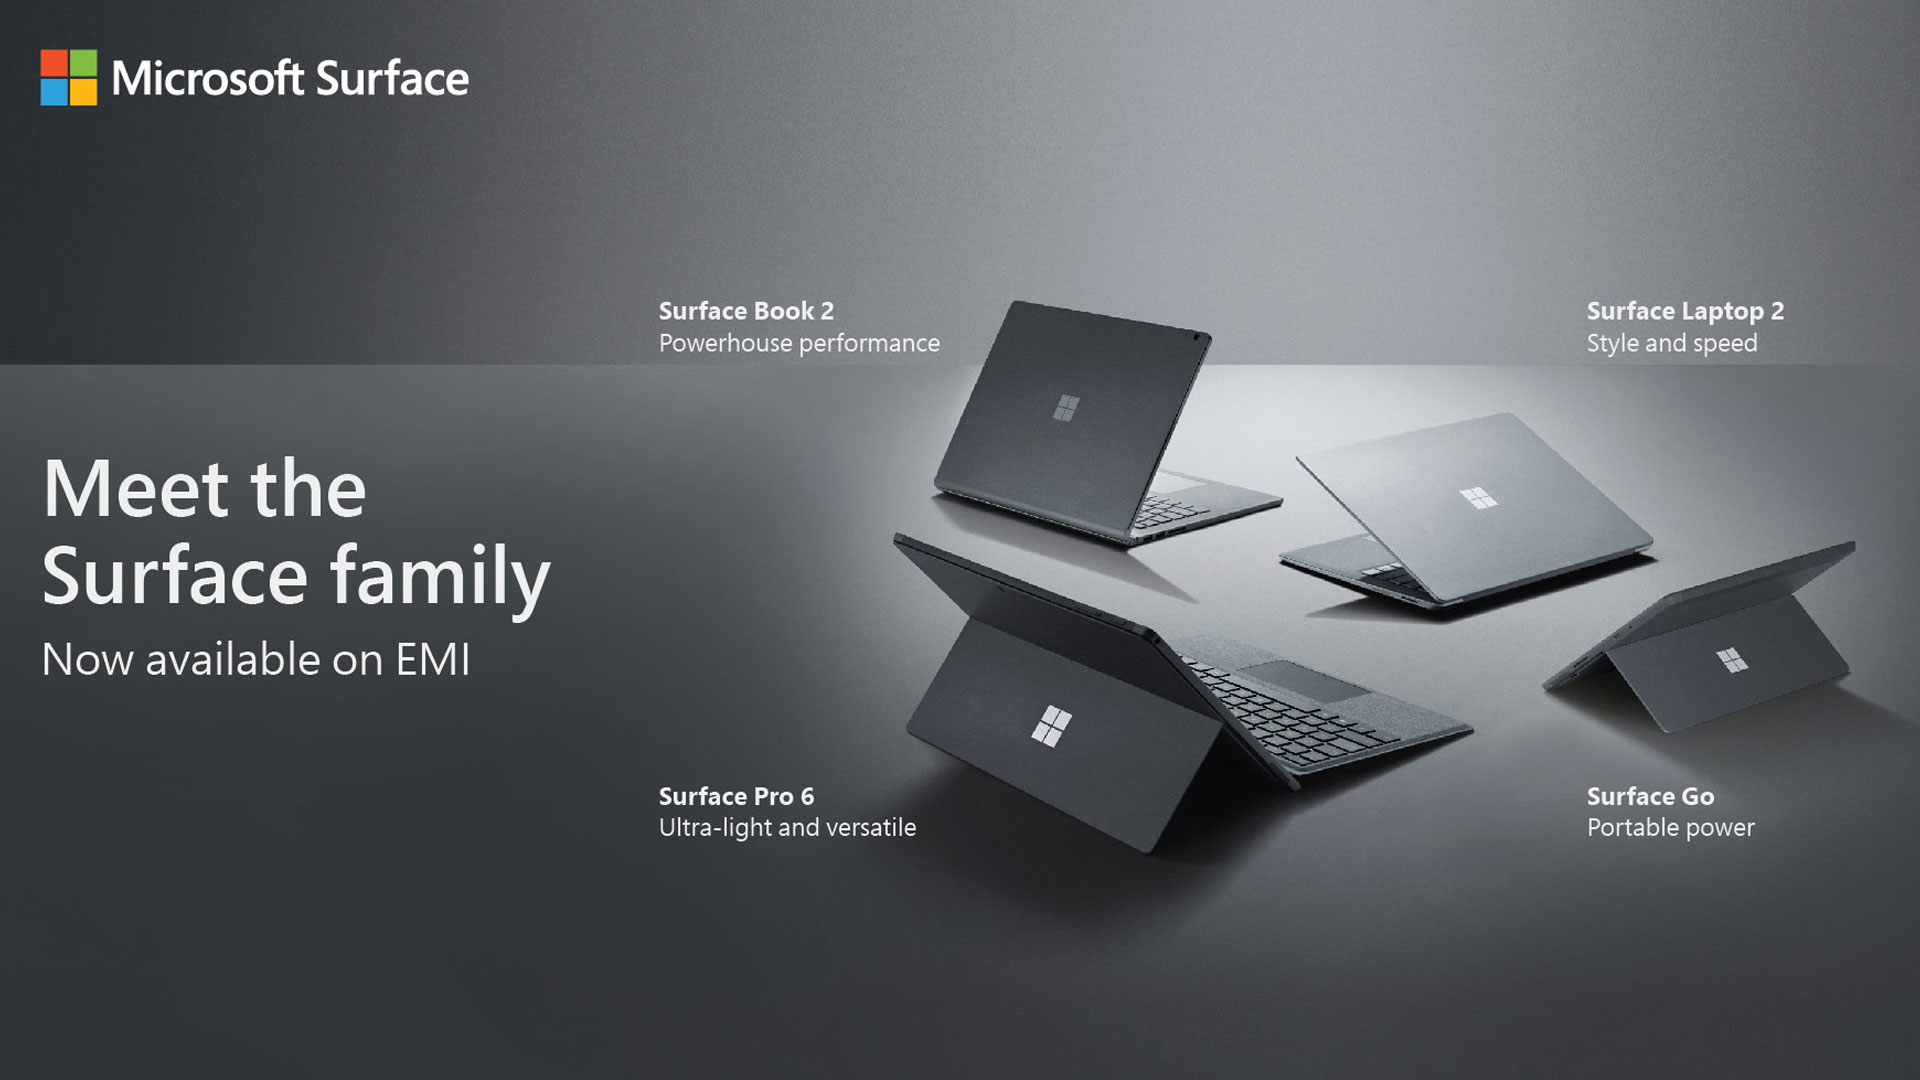 Meet the Surface family - Surface Book 2, Surface Laptop 2, Surface Pro 6, and Surface Go